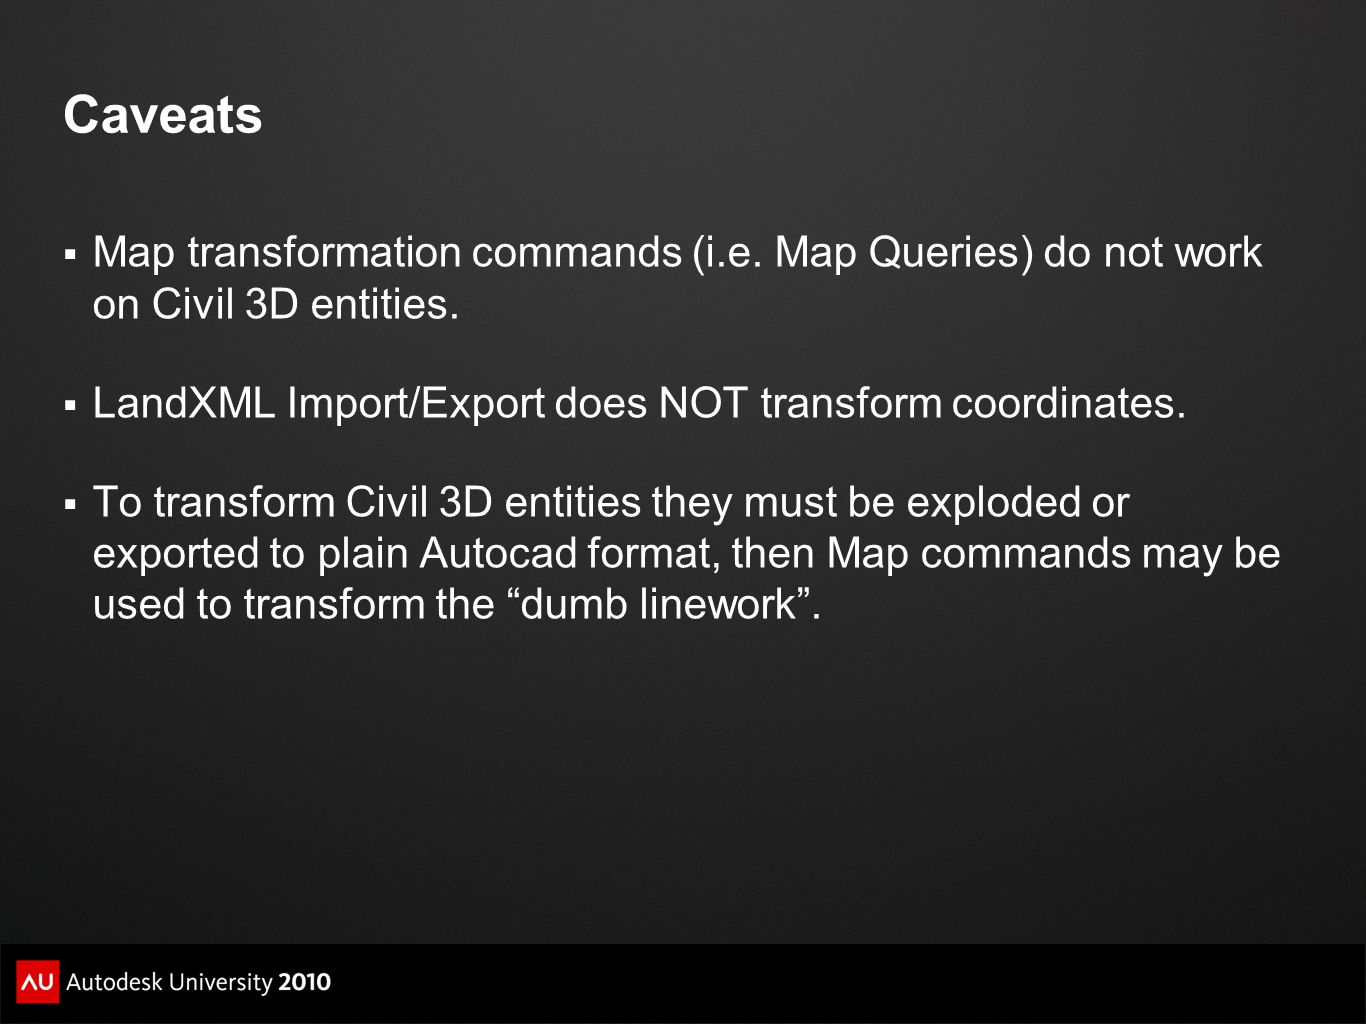 Caveats Map transformation commands (i.e. Map Queries) do not work on Civil 3D entities. LandXML Import/Export does NOT transform coordinates.